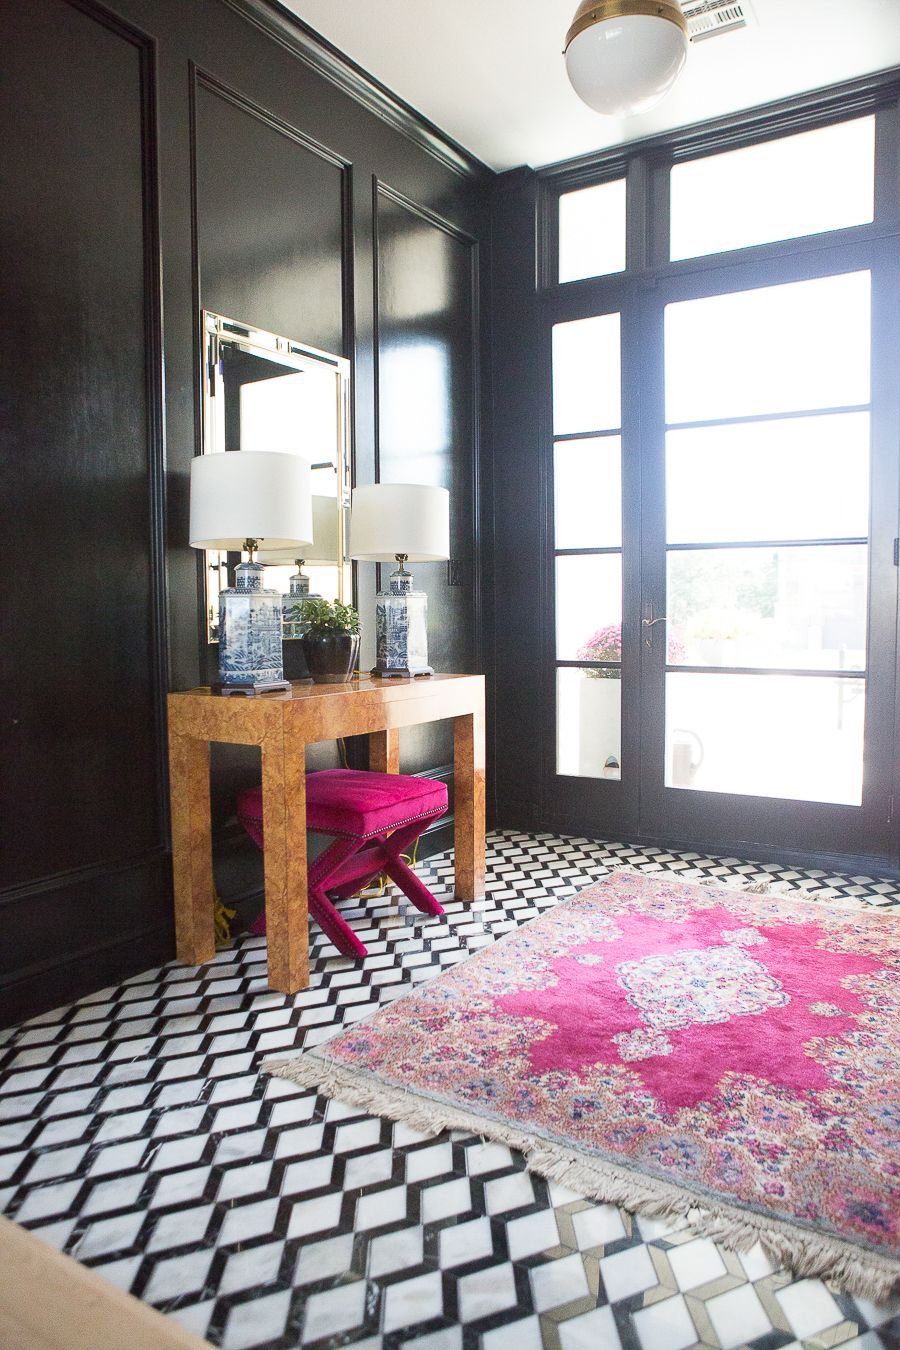 10 Bold Pink and Navy Rugs for Home Decor | Home decor, Decor ...